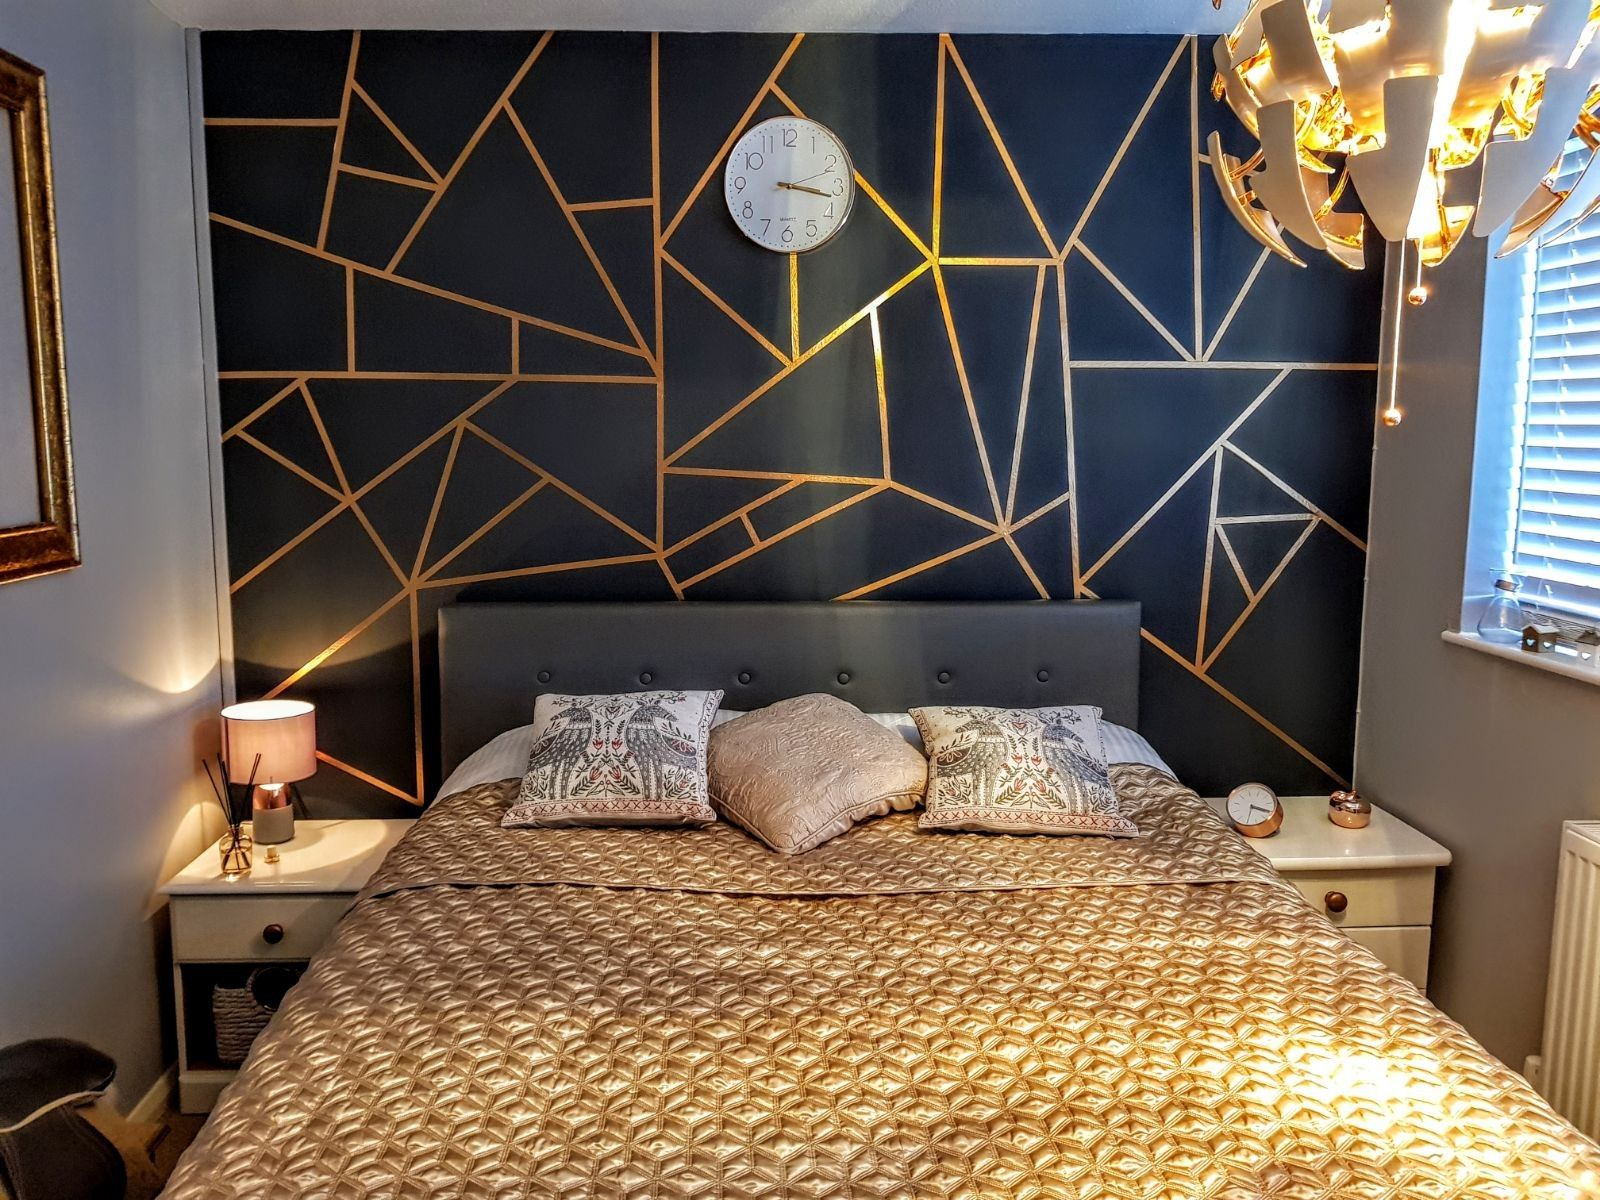 Black And Gold Geometric Wall Wall Decor Bedroom Geometric Wall Paint Bedroom Wall Designs